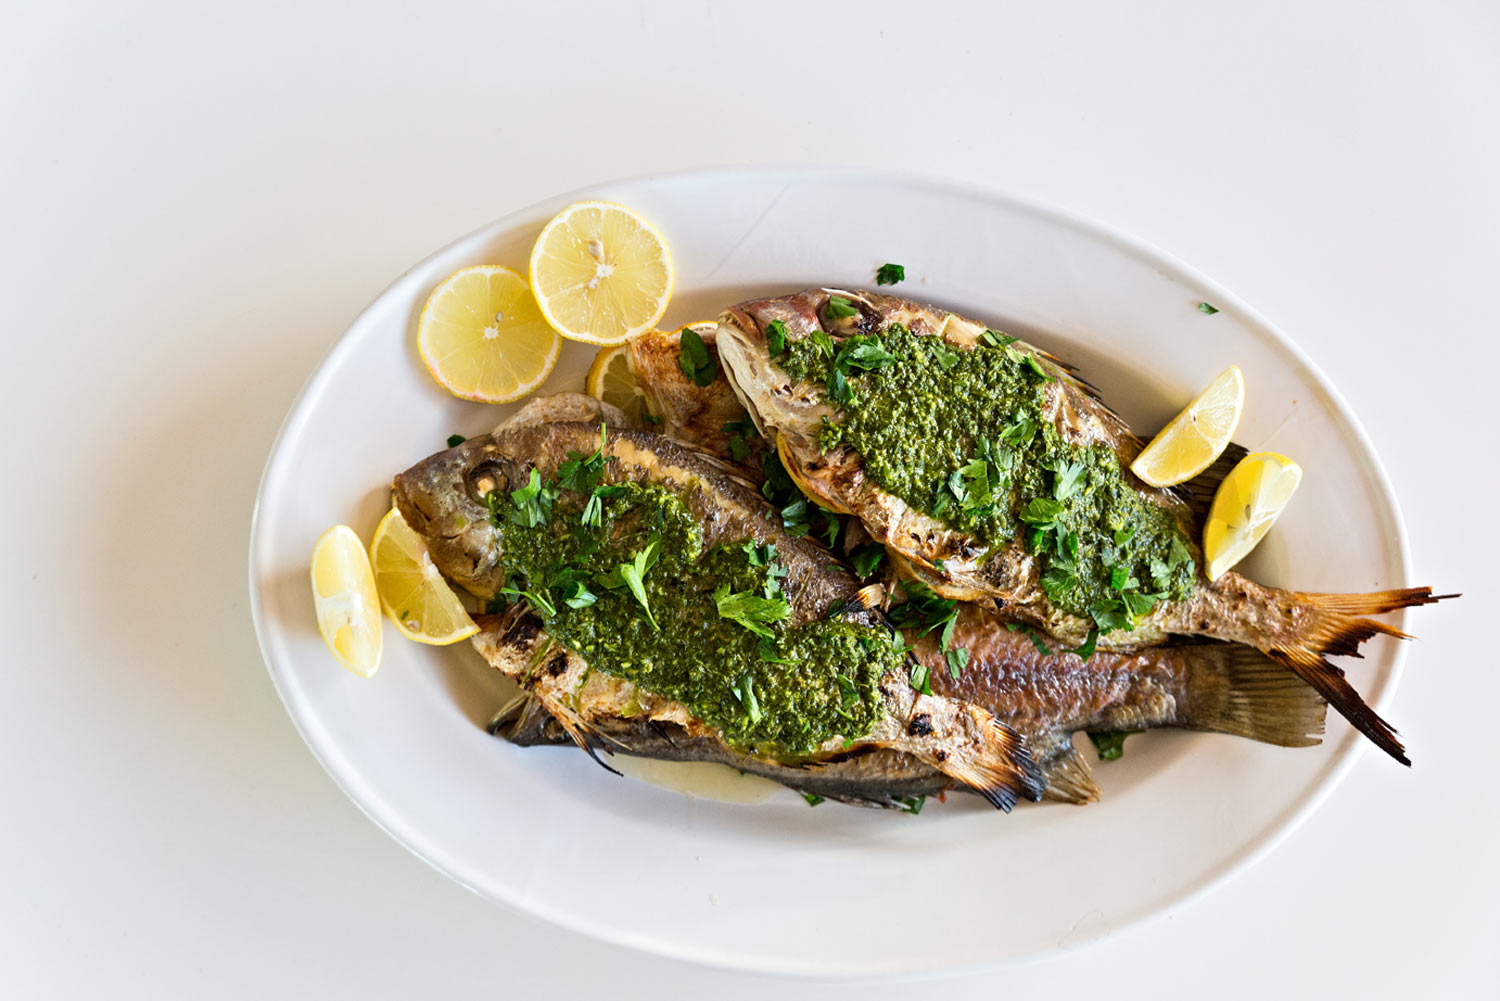 Barbecued Whole Snapper